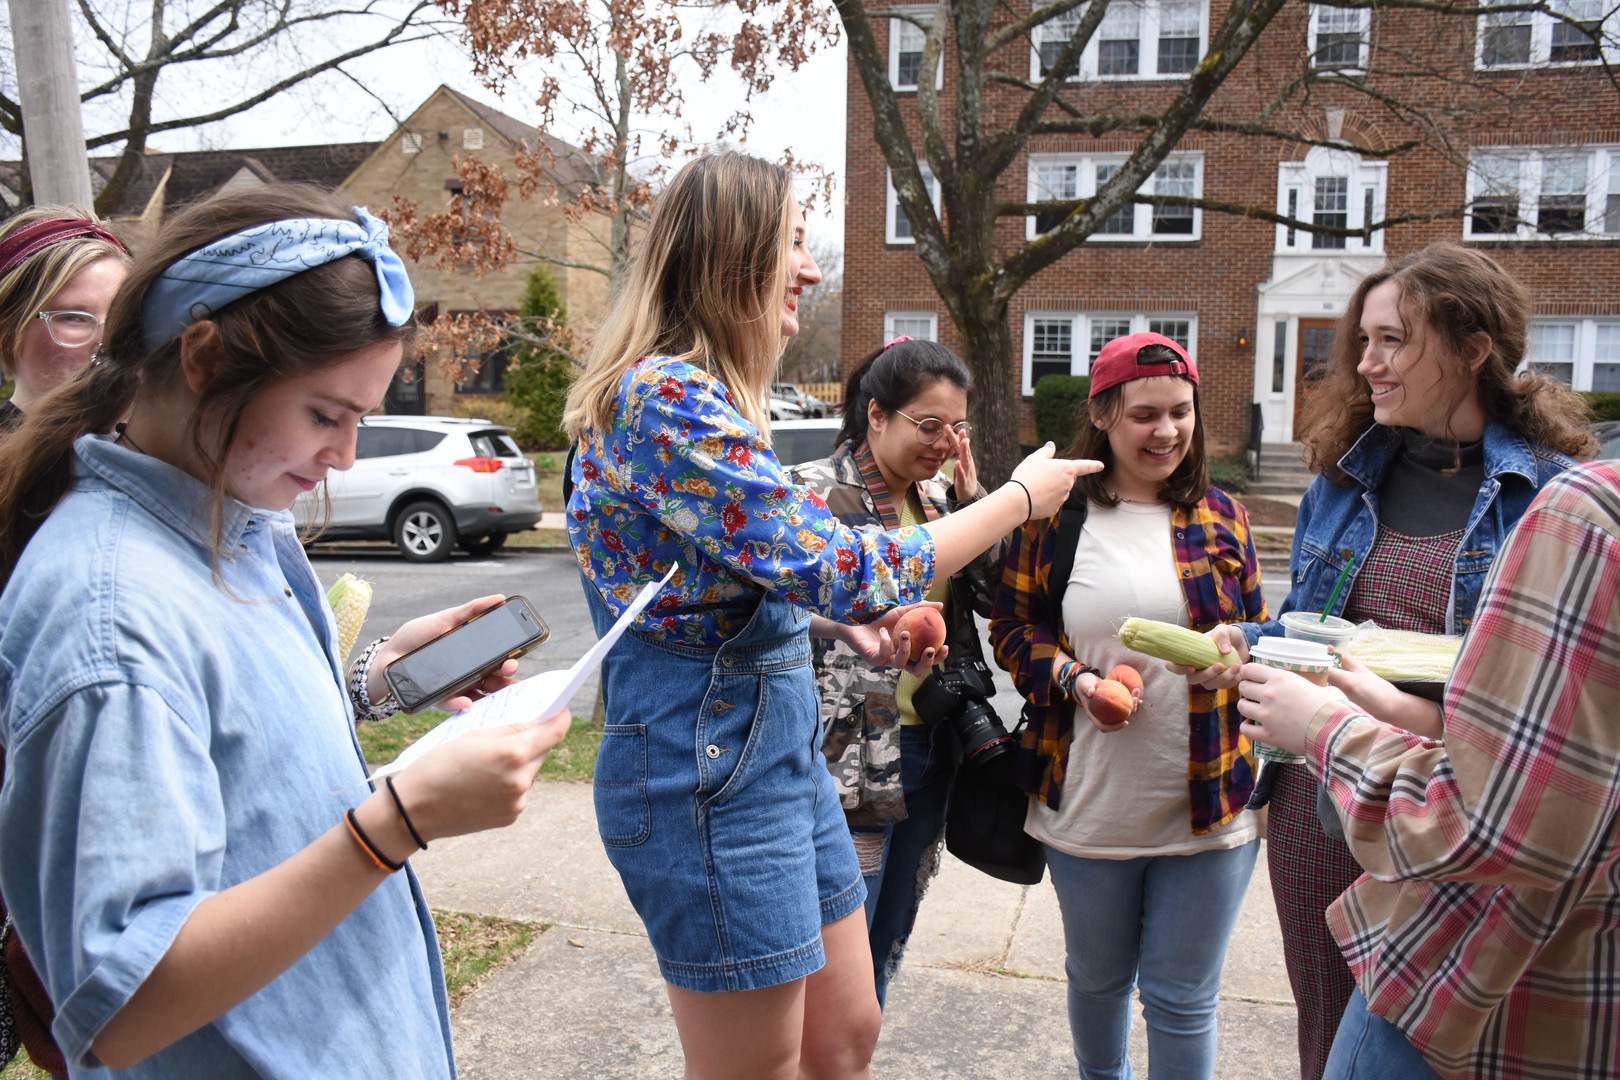 """Members of Derby prepare for a day of shooting their comedic music video """"Georgia Peach, Pennsylvania Corn Cob"""" on Sunday, April 7, 2019 on Fairmount Avenue, State College. Derby was created in order to provide a supportive and safe space for women to write and perform comedy. Left to right, Molly Shilling, Kristen Nodell, Julie Larsen, Chelsea West, Rachel Hobbs, Torin Cronin, and Kellie Hahn."""